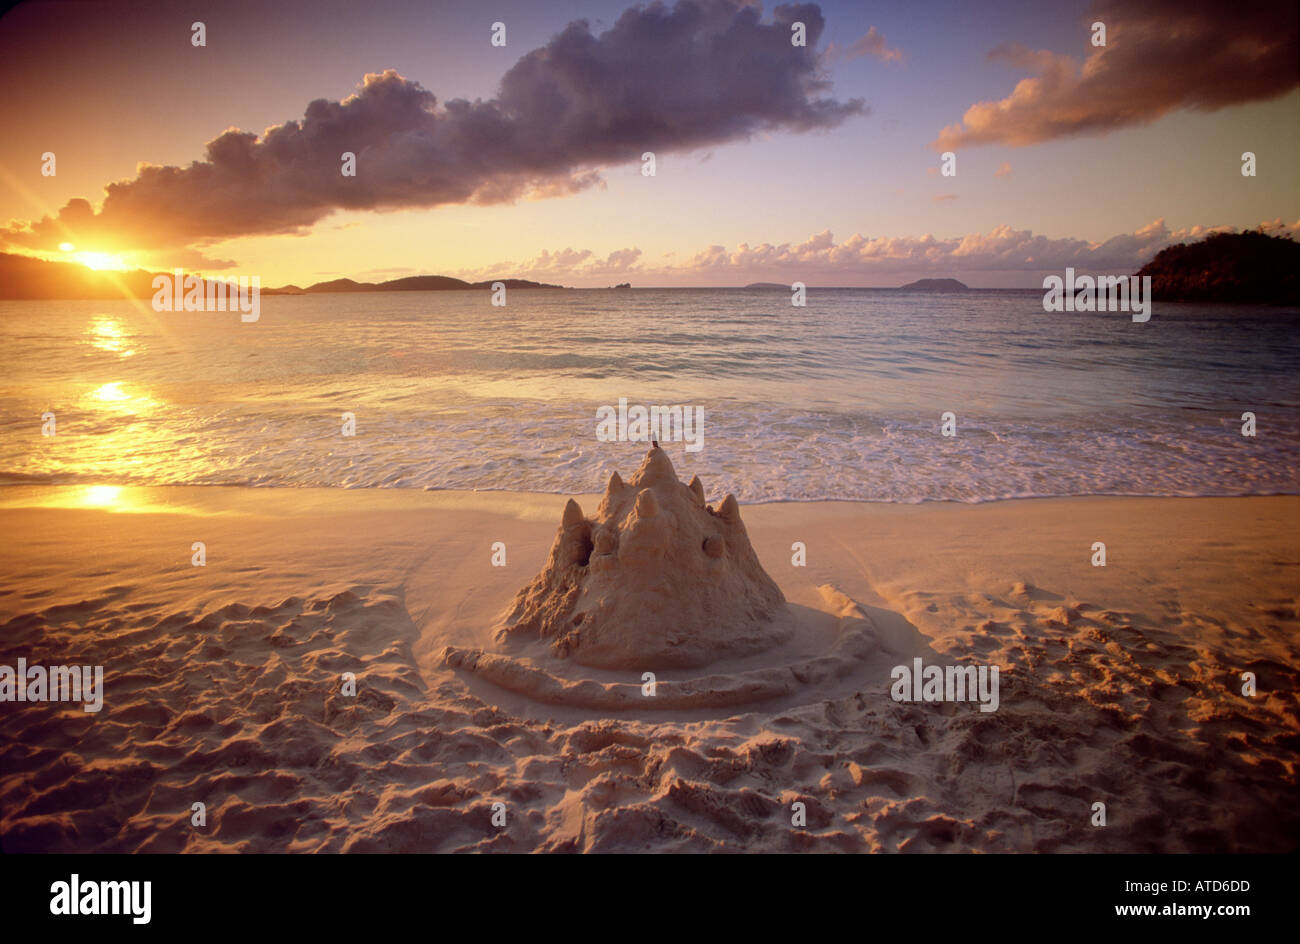 A Sand Castle Stands On The Beach At Sunset Caribbean Island Of St John In US Virgin Islands